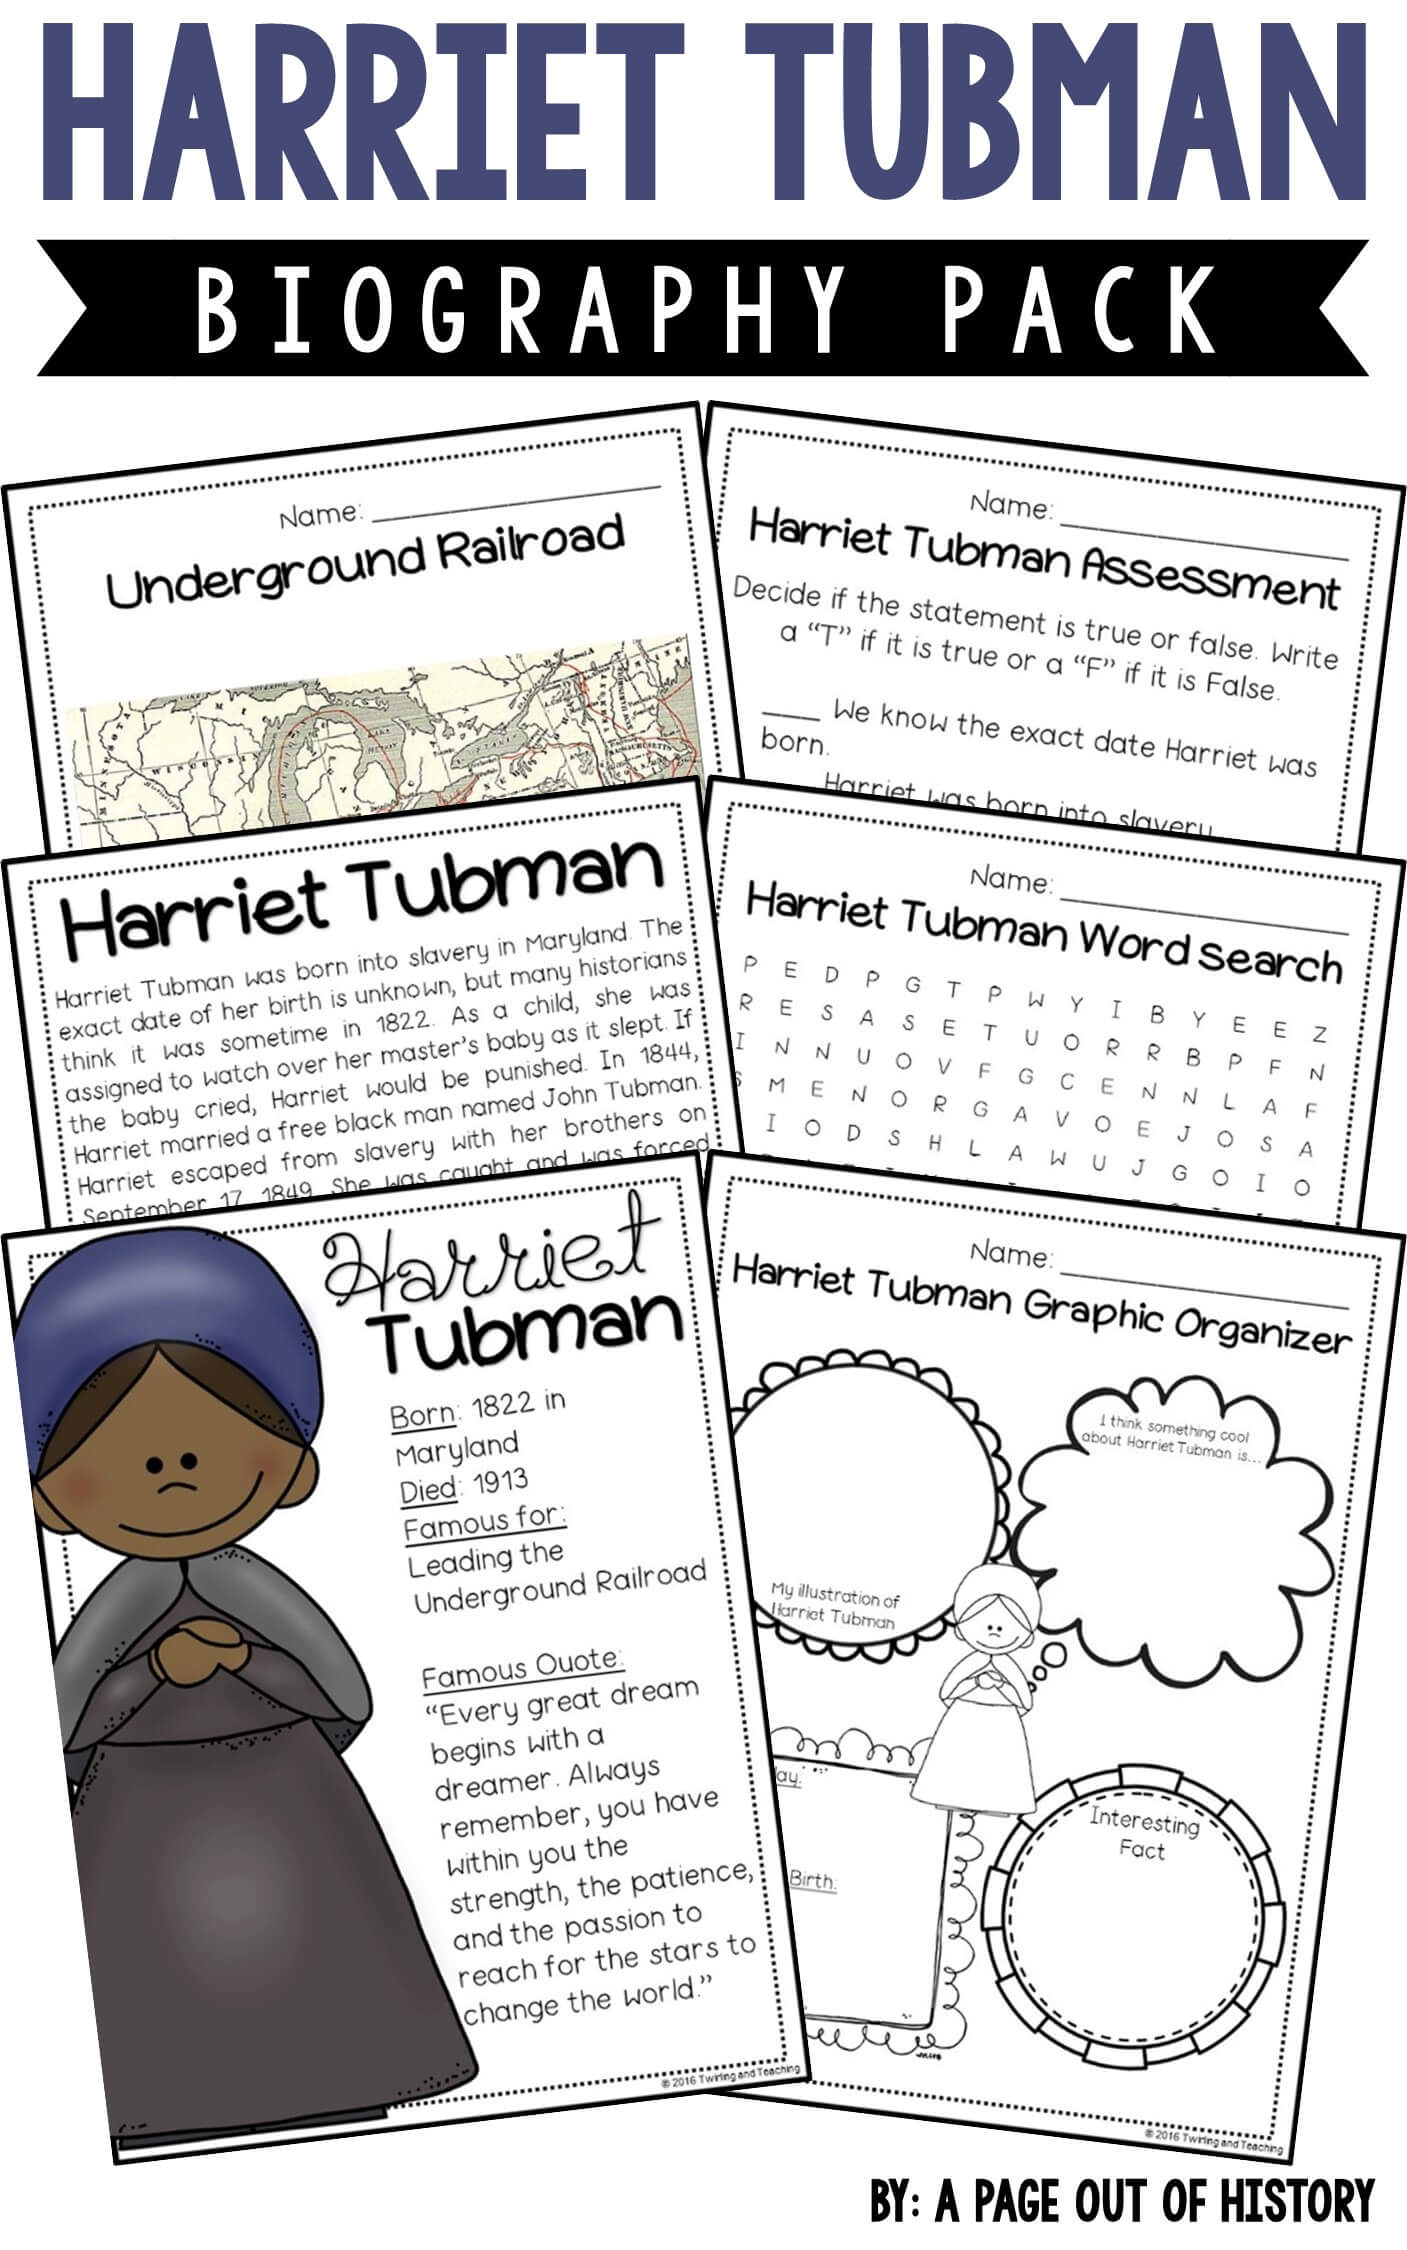 hight resolution of Harriet Tubman Biography Pack (Black History Month) - A Page Out of History